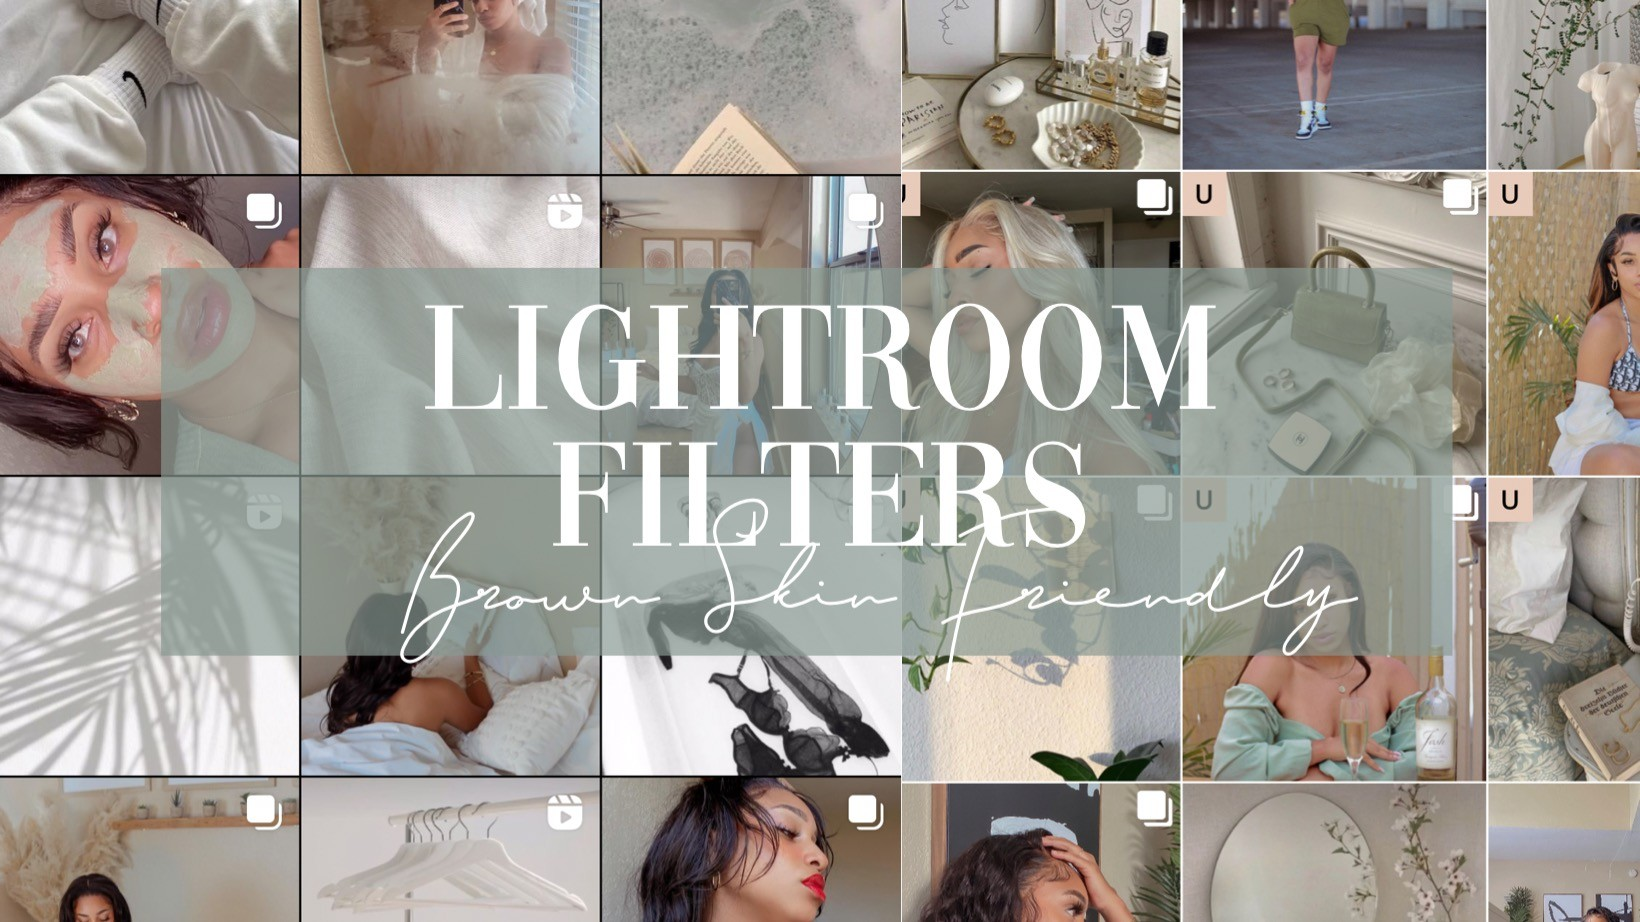 AppSumo Deal for Chocolate Light Room Filters Pack